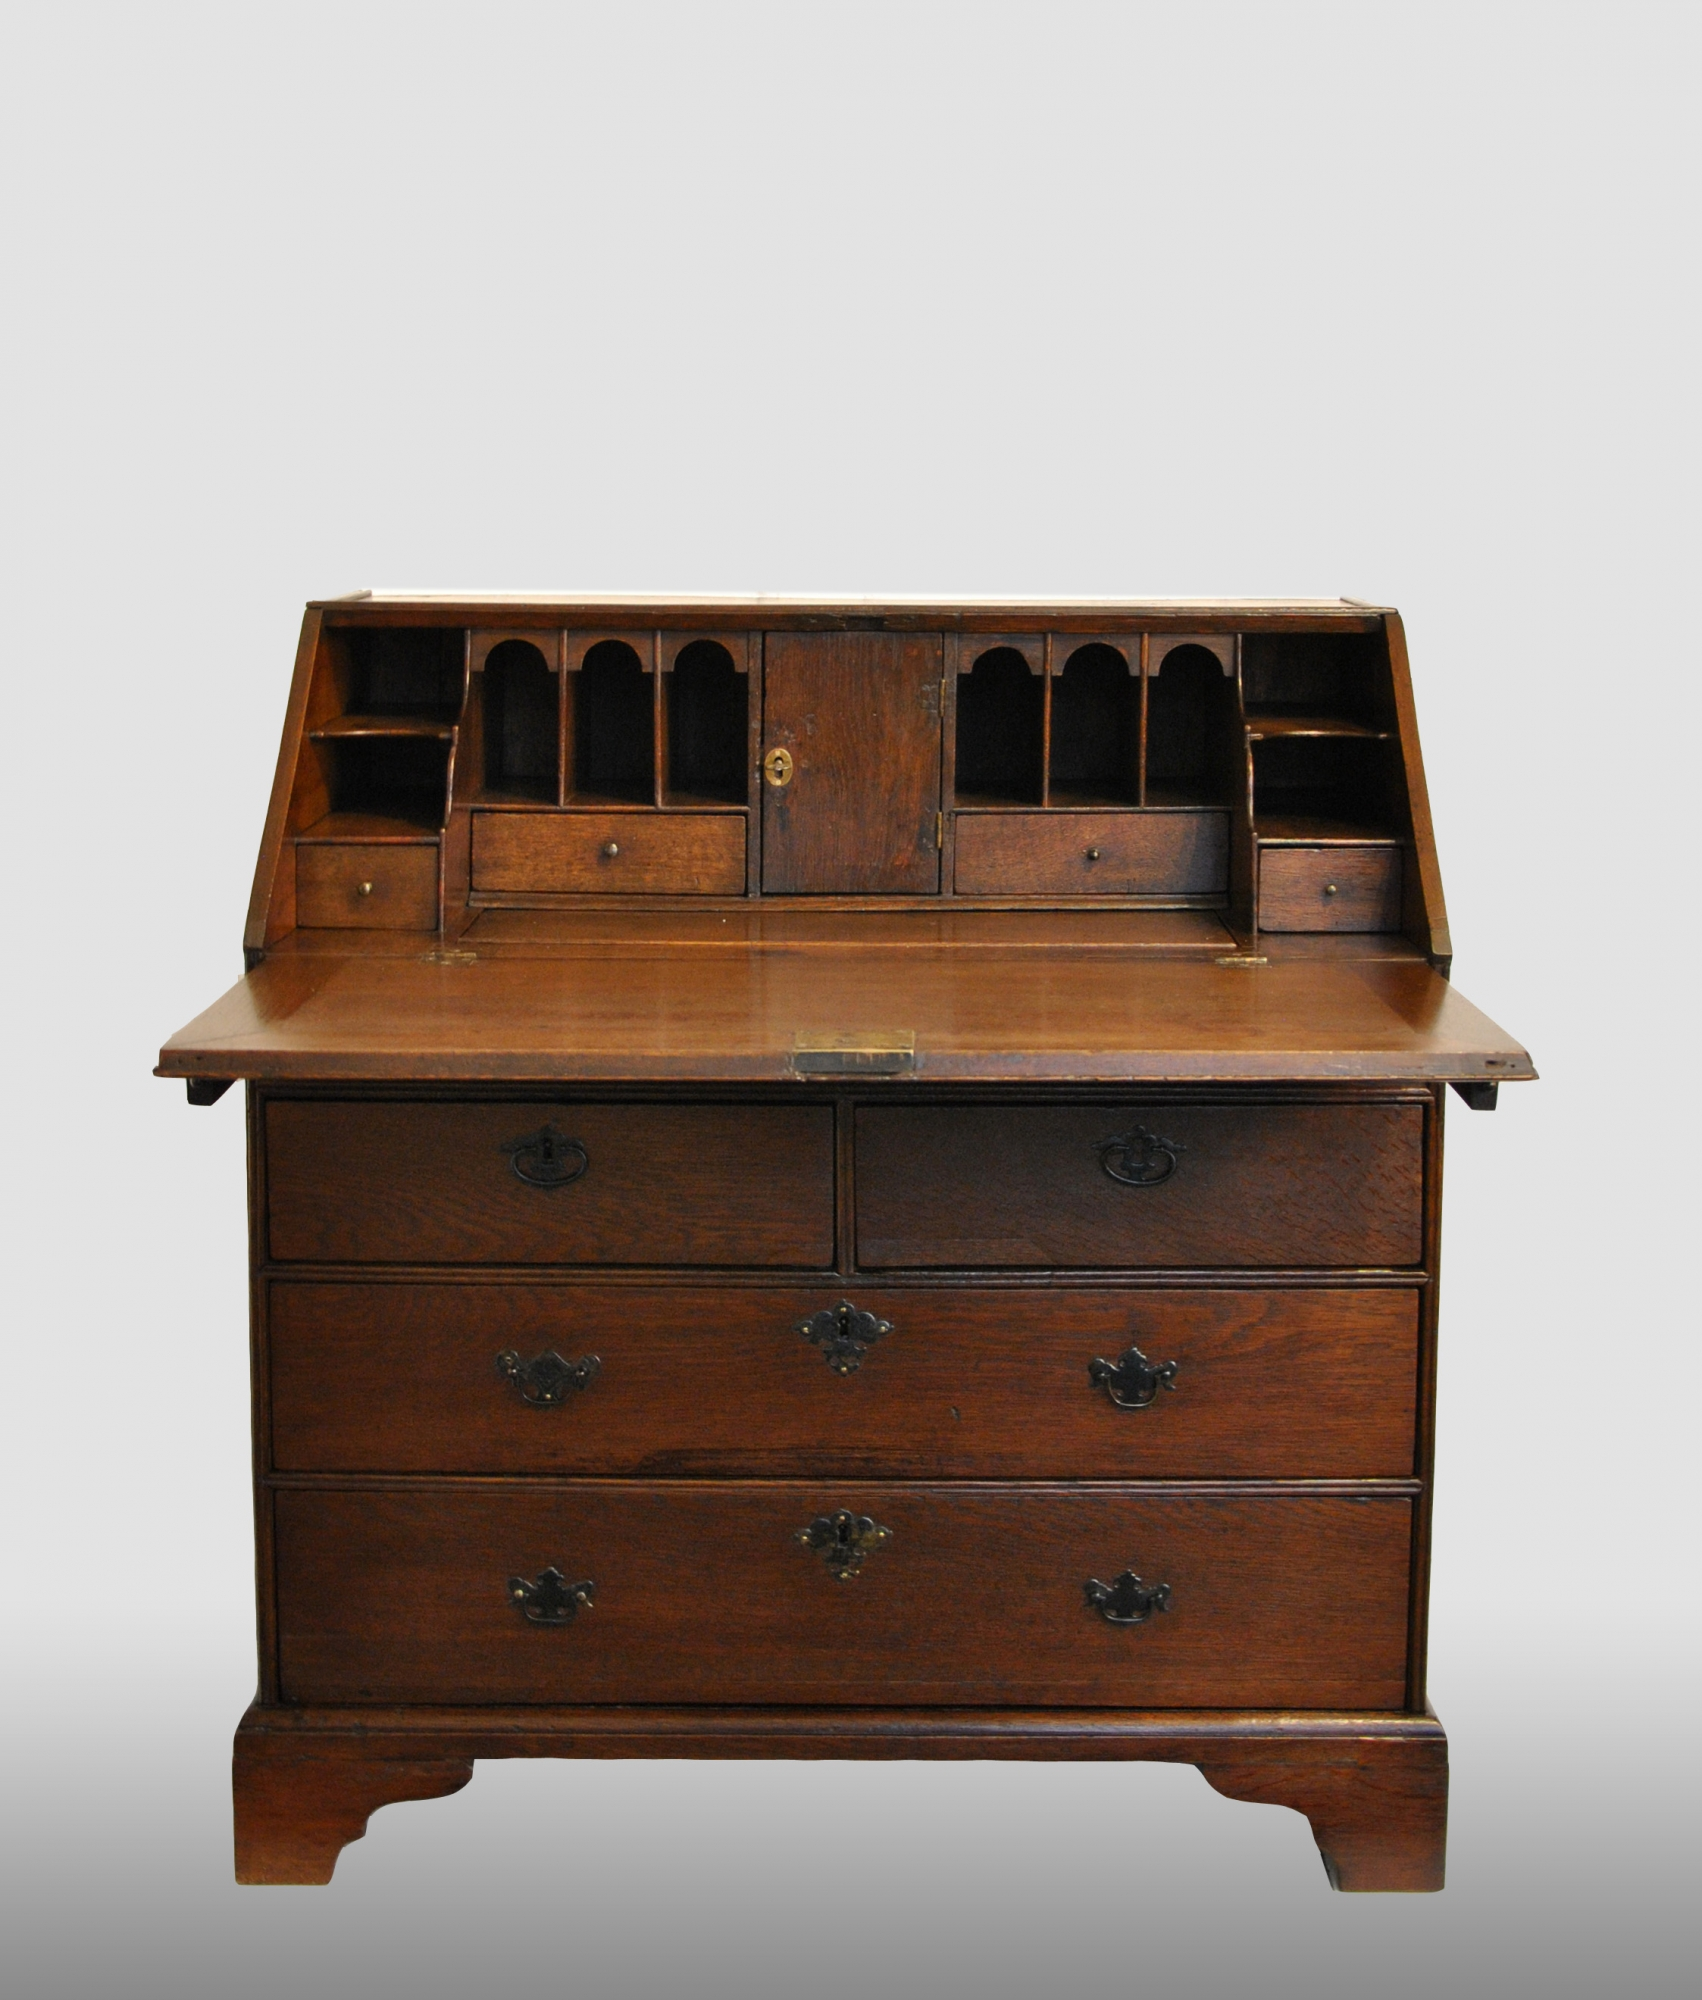 Engels Interieur Engels Secretaire Met Step Interieur 18e Eeuw Artlistings